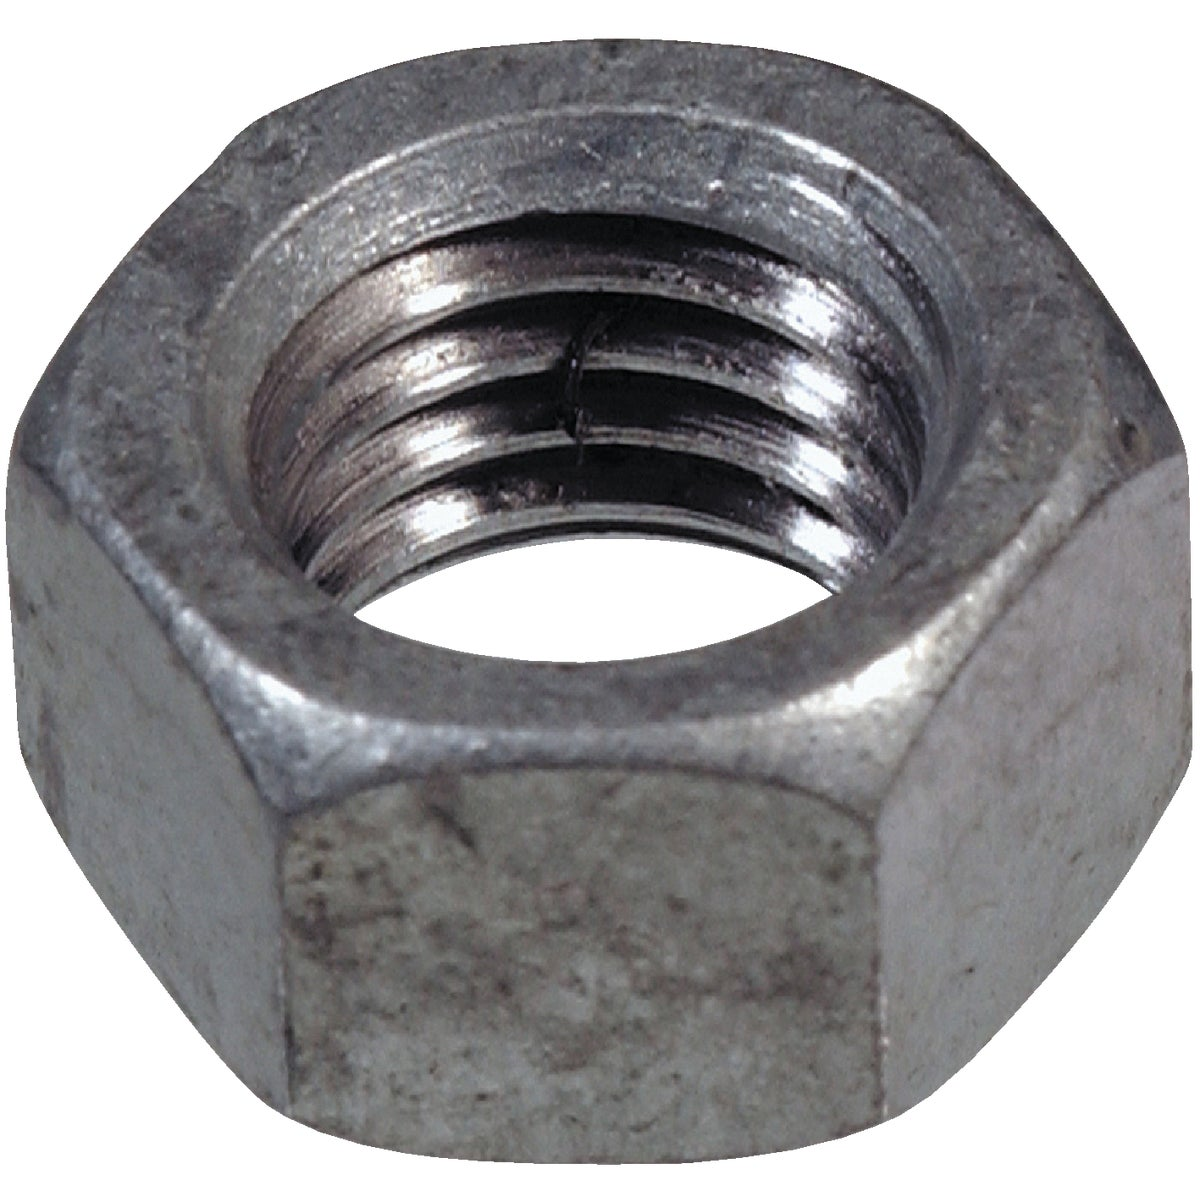 1/2-13 SS HEX NUT - 829308 by Hillman Fastener